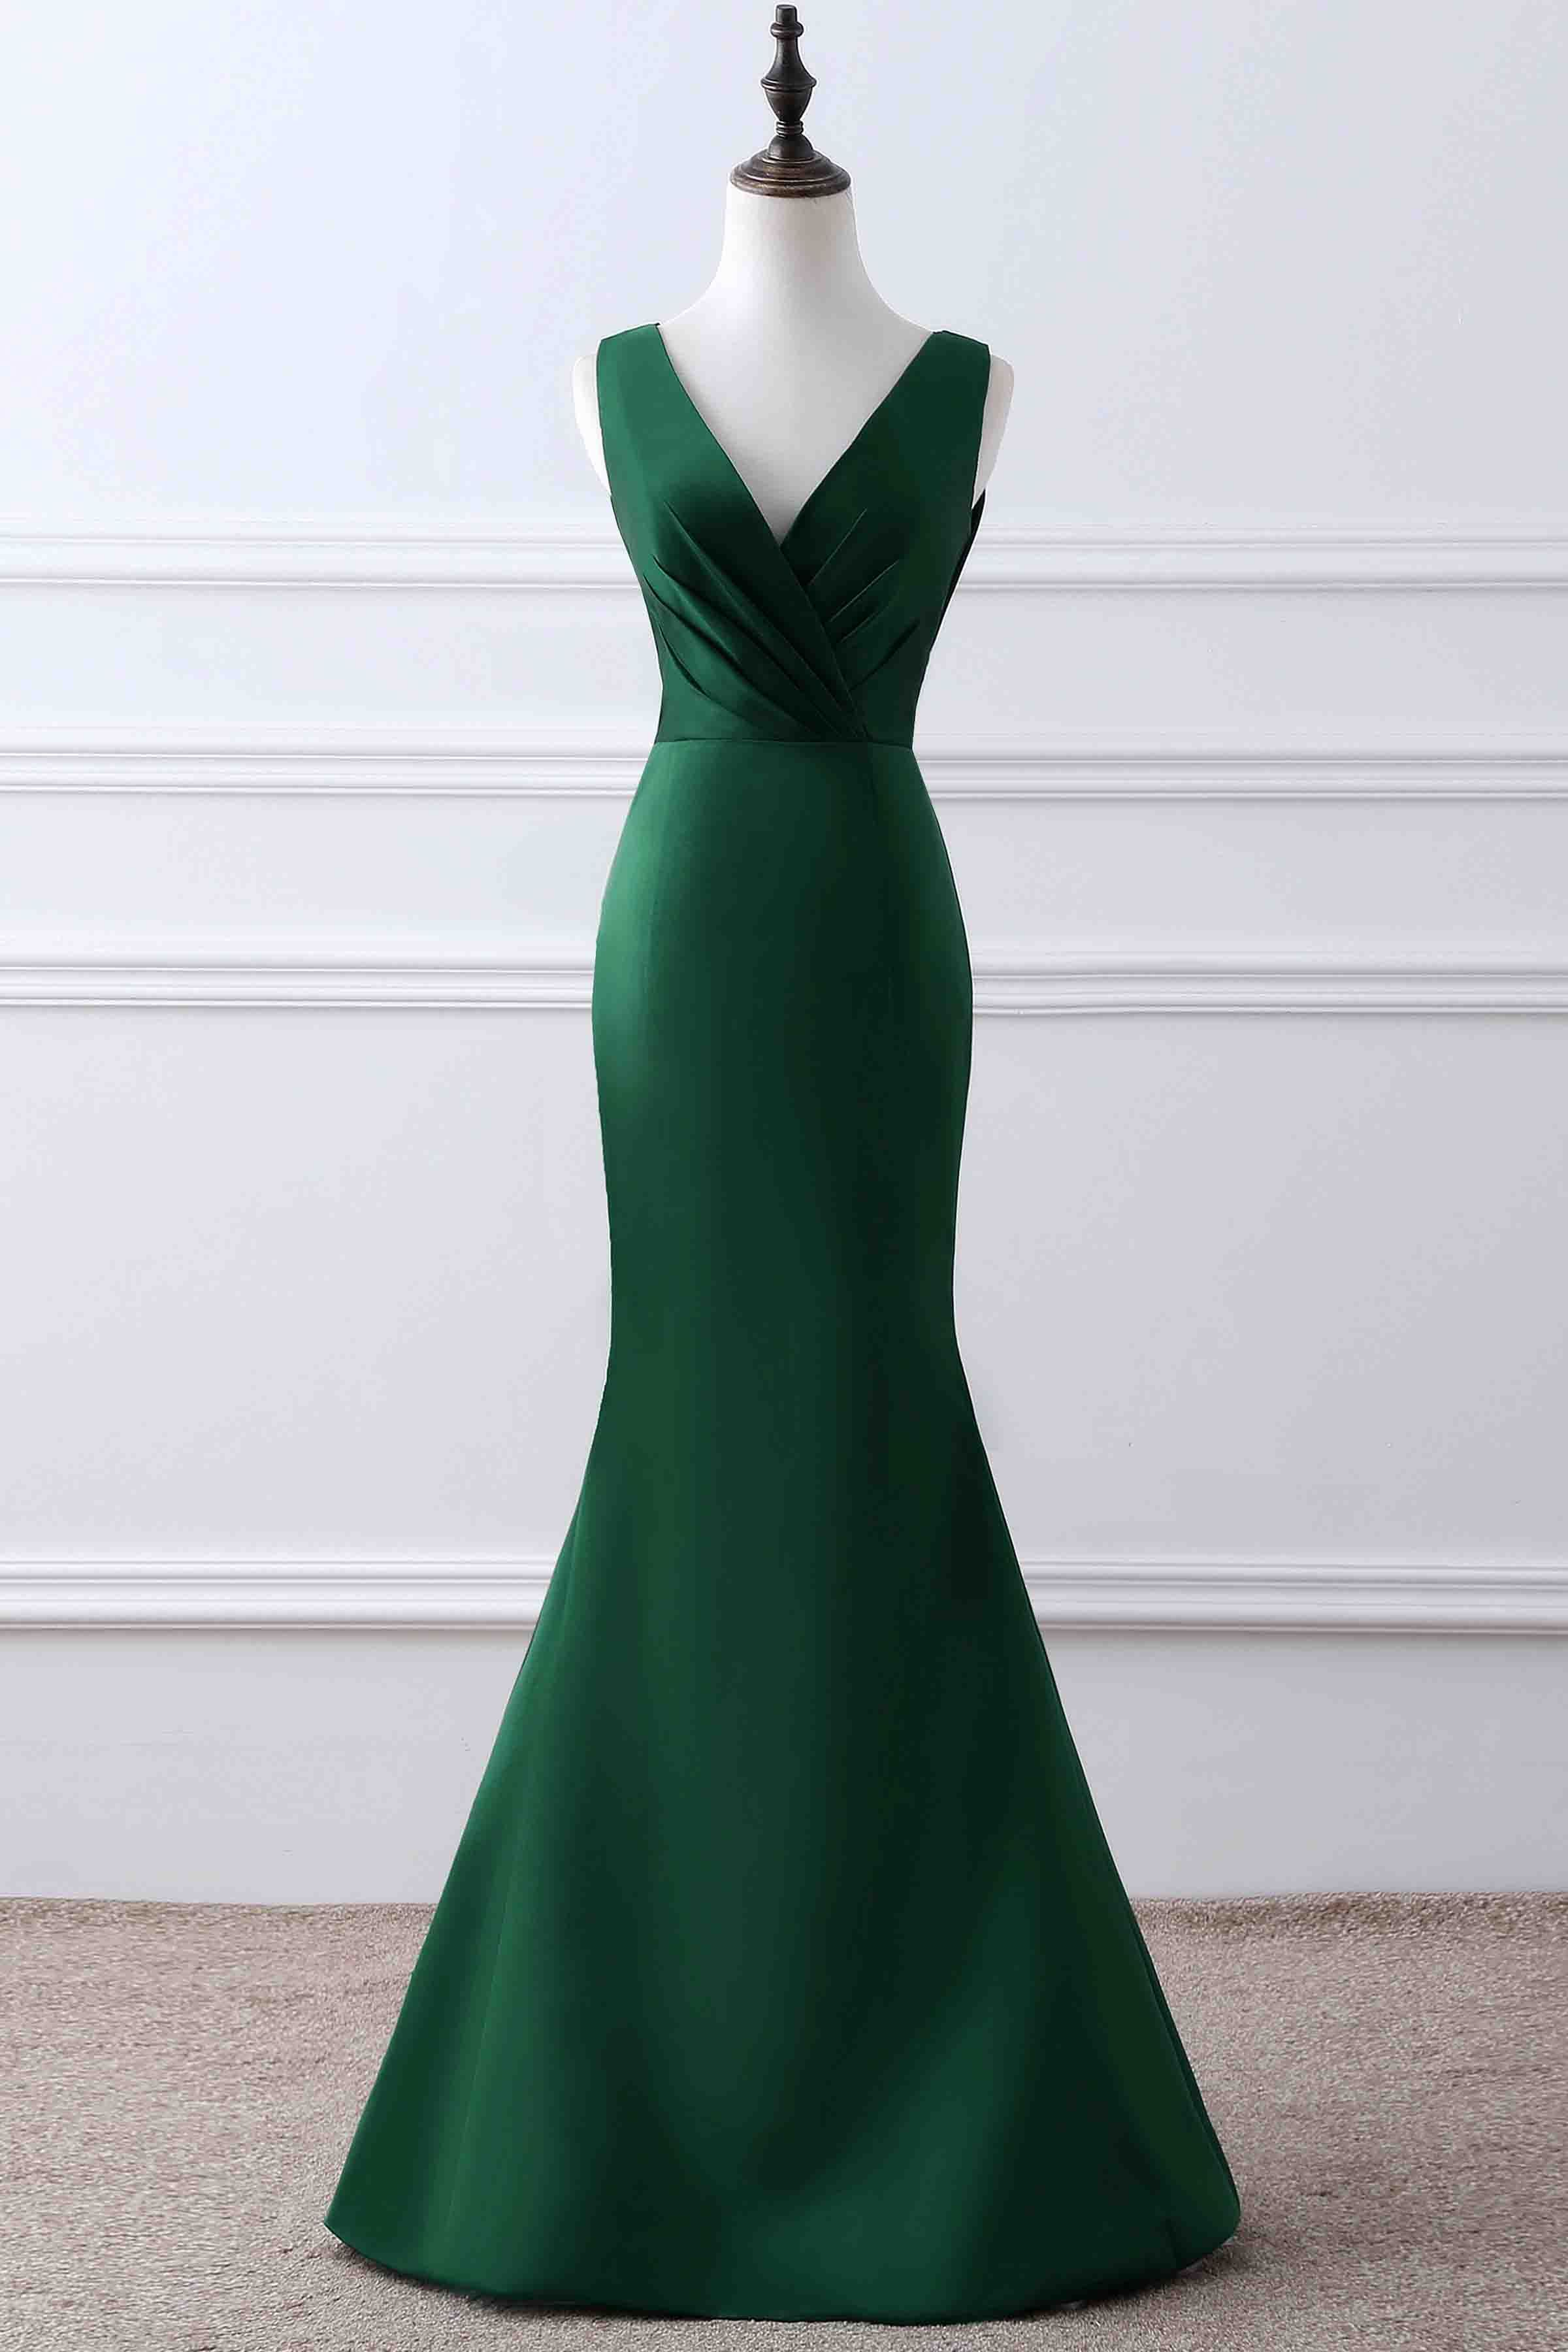 6837fb3f44d8a4 Simple green matte satin prom dress, ball gown, elegant v-neck long dress  for prom 2017